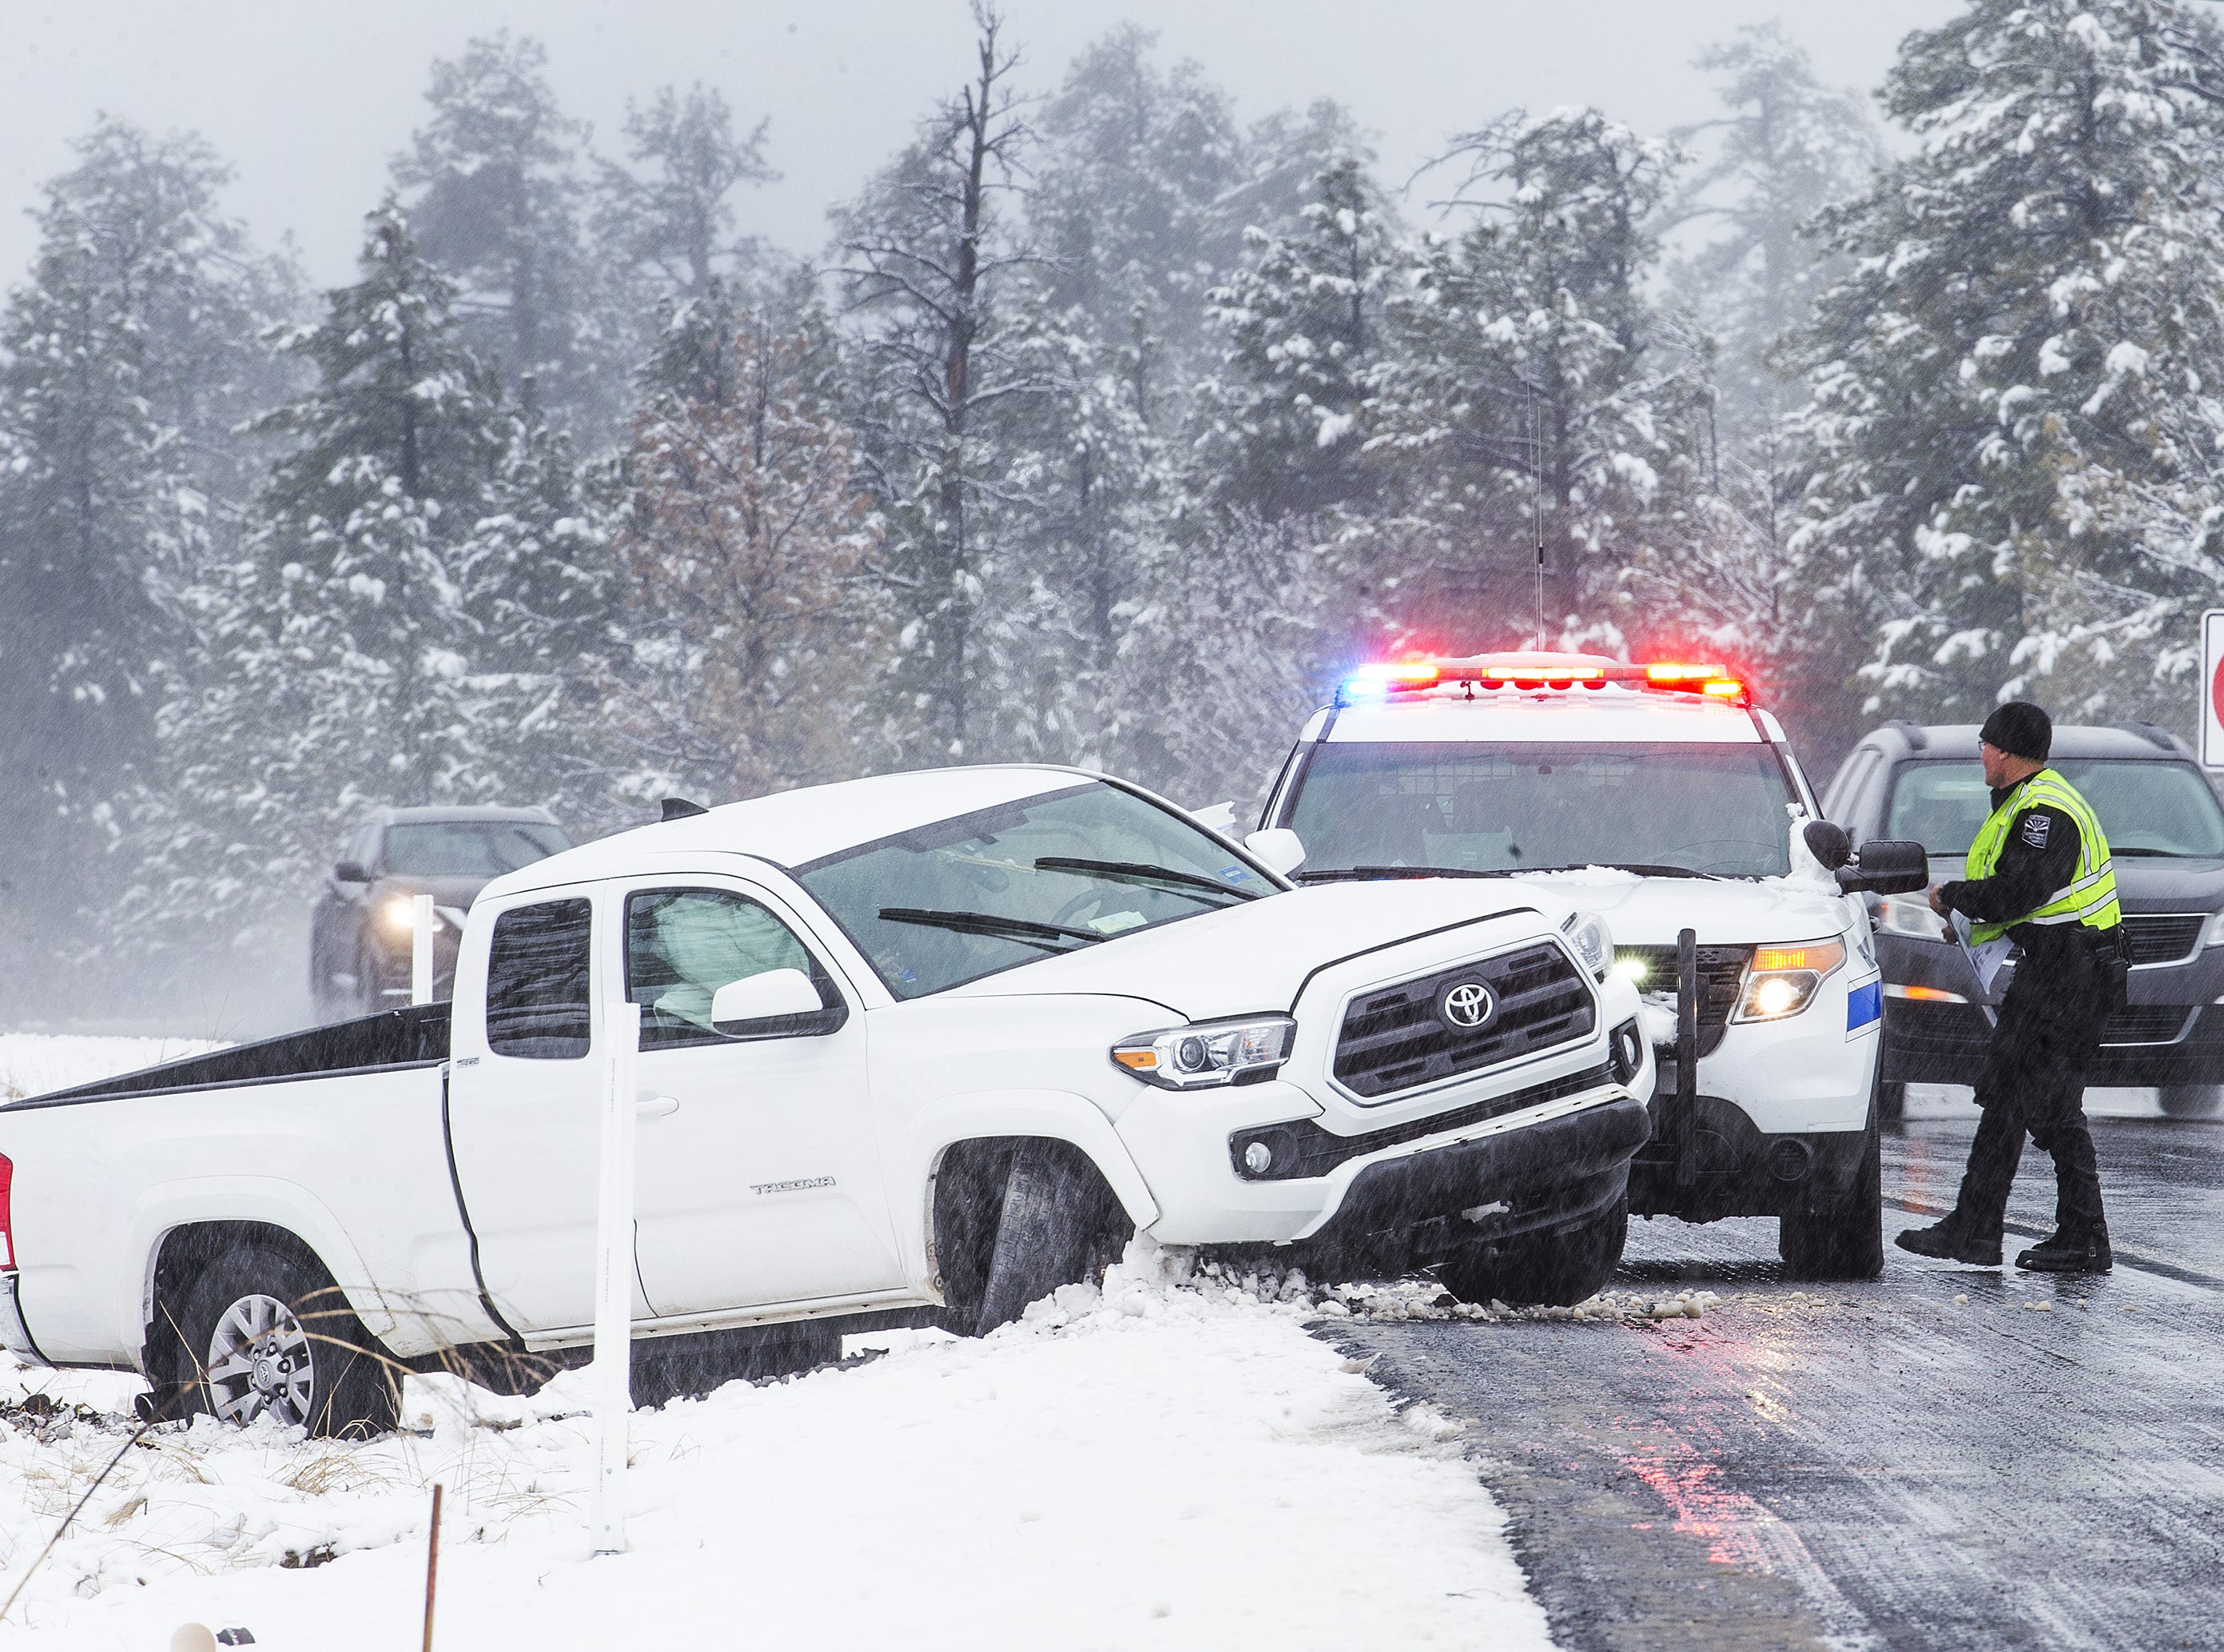 A pickup slid off of the northbound lanes of I-17, 1 mile north of Fox Ranch Road, south of Flagstaff on November 30, 2018. A Department of Public Safety trooper prepares to lay down traffic cones to alert other drivers. Snow has fallen in northern Arizona causing dangerous driving conditions that have resulted in cars and trucks sliding off the road.